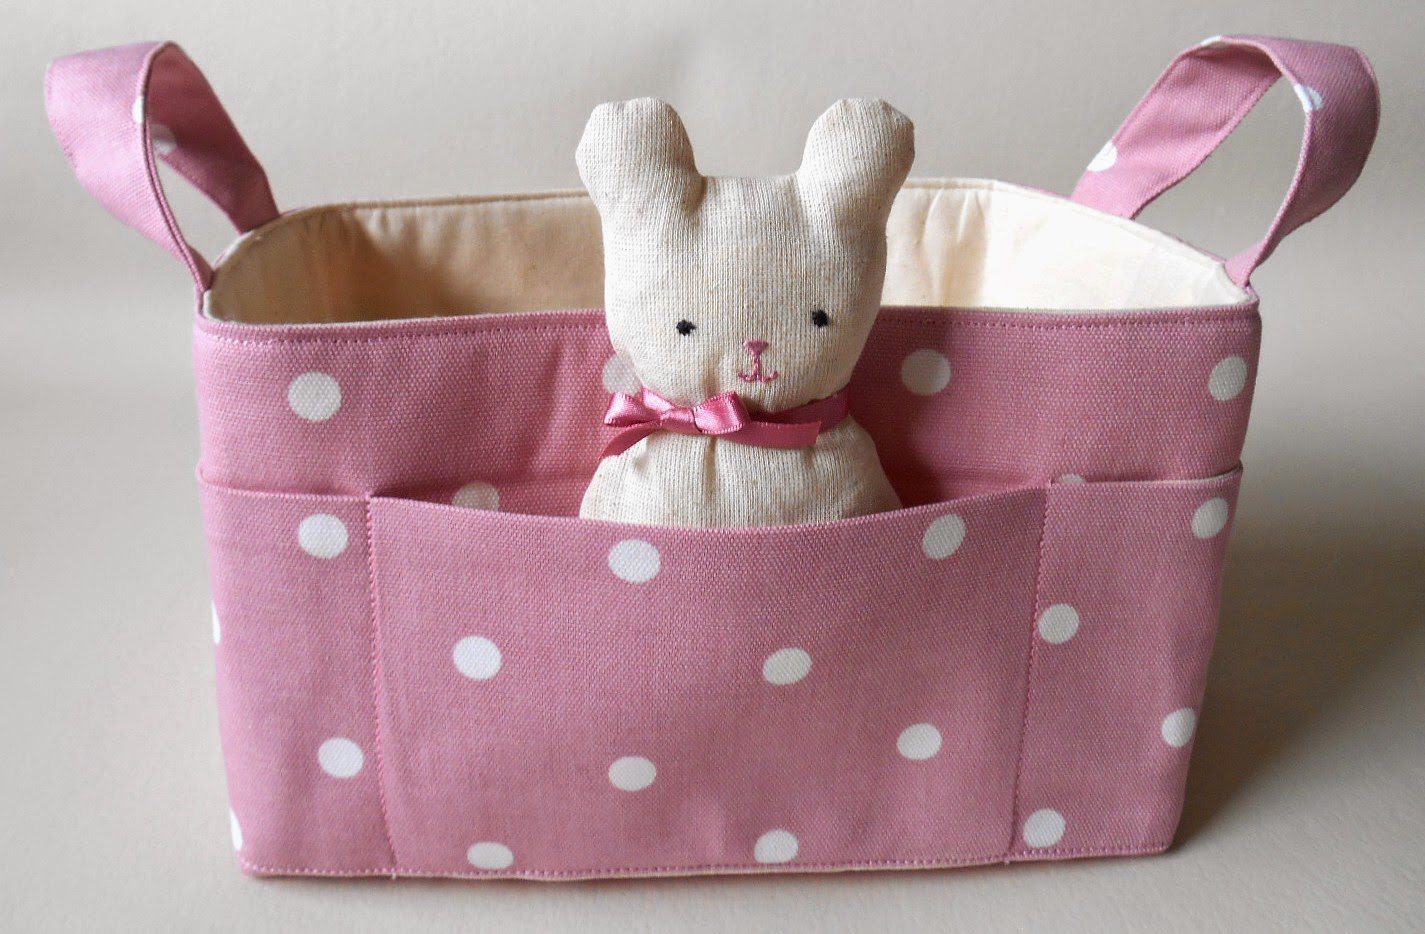 Pink polka basket with Teddy